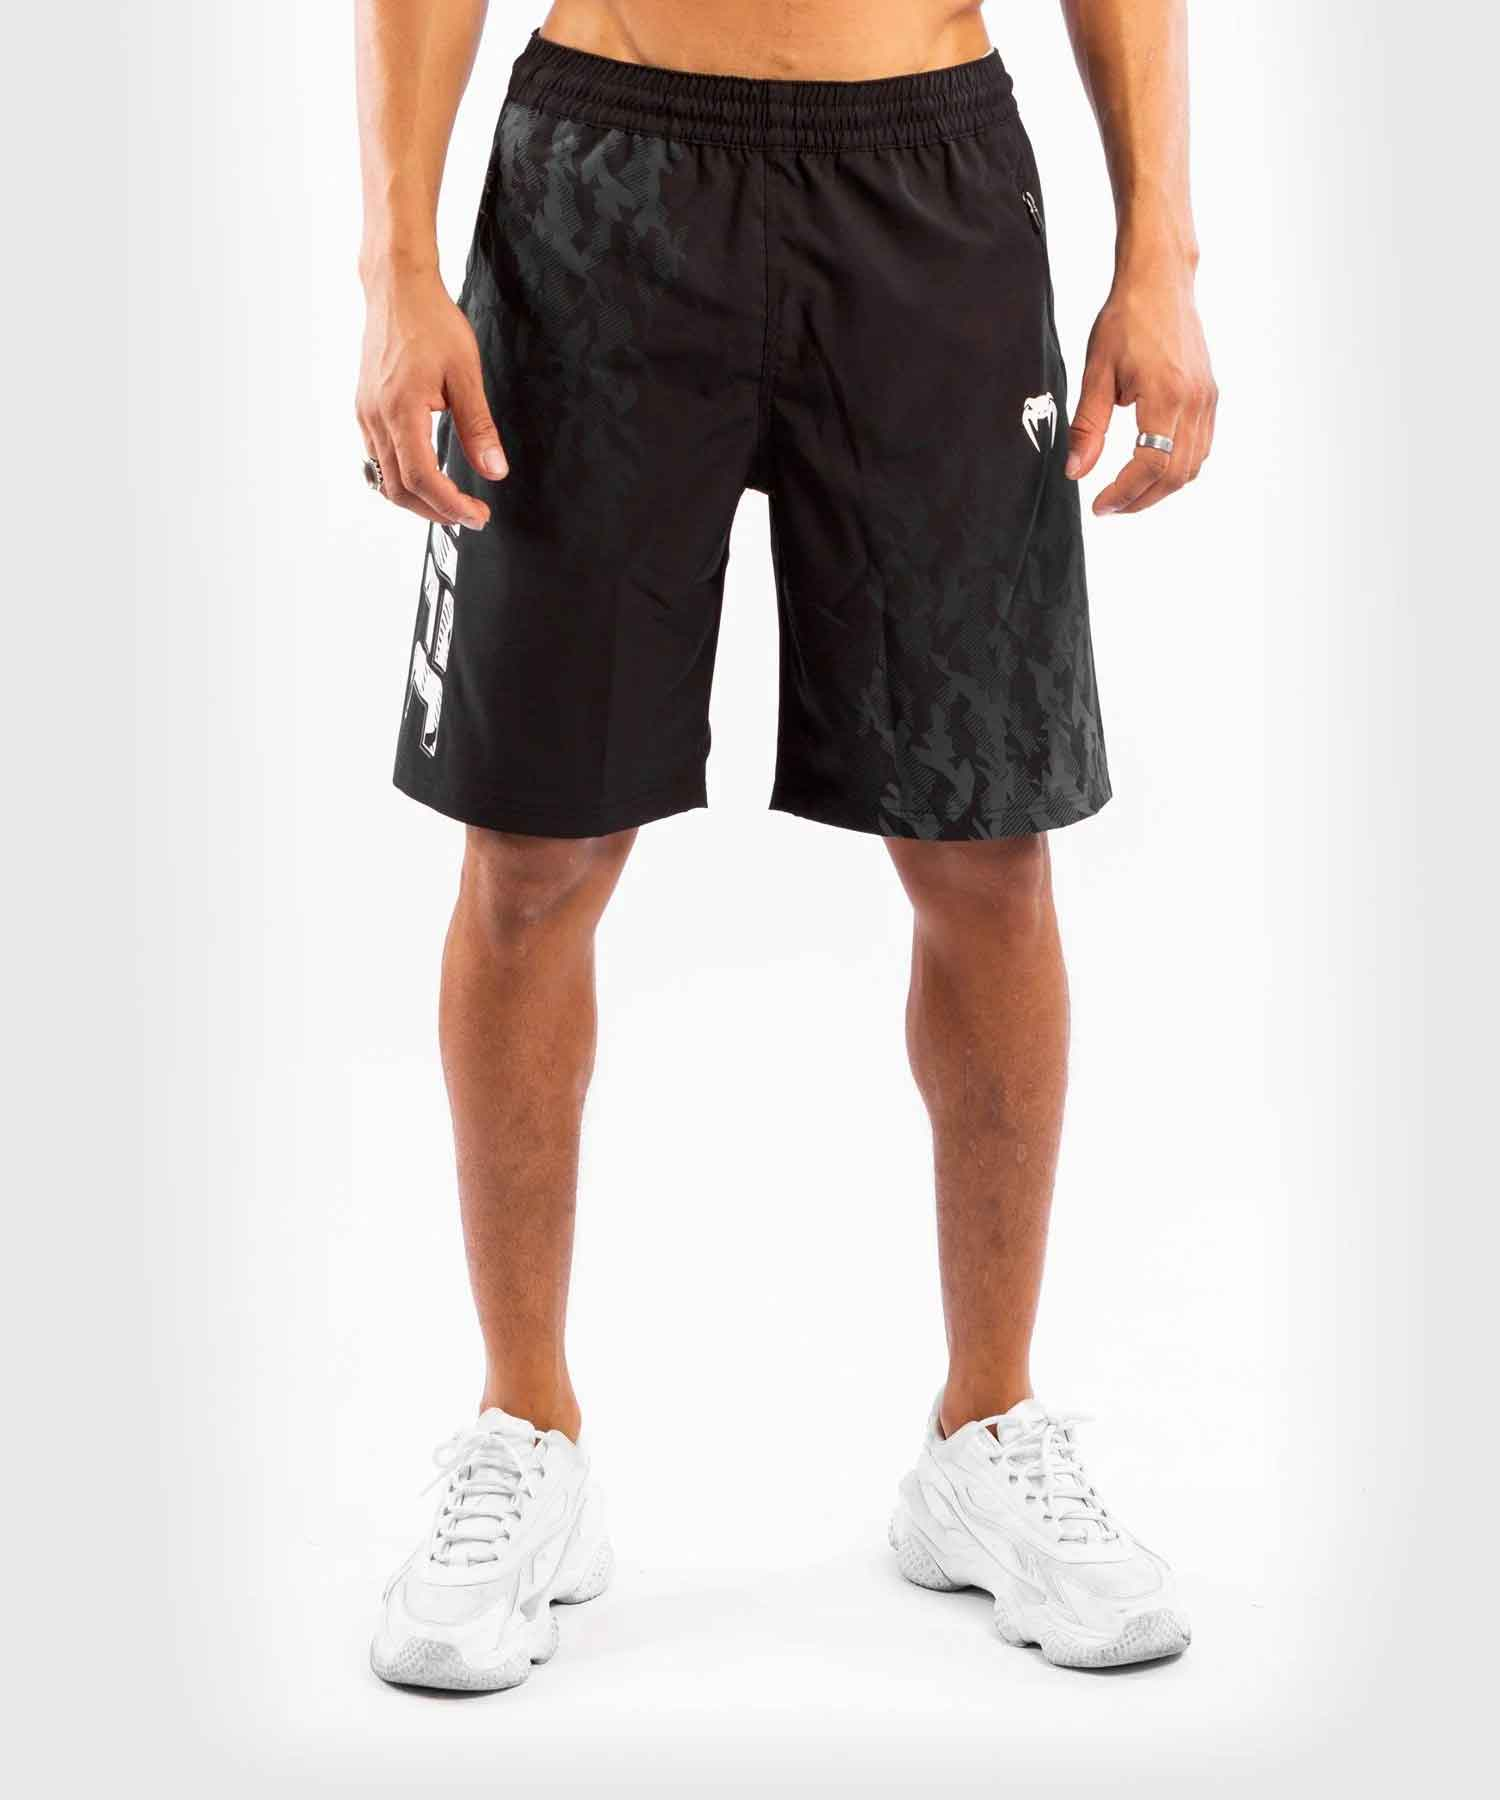 UFC VENUM AUTHENTIC FIGHT WEEK MEN'S PERFORMANCE SHORTS/UFC VENUM オーセンティック ファイトウィーク メンズ パフォーマンスショーツ(黒)